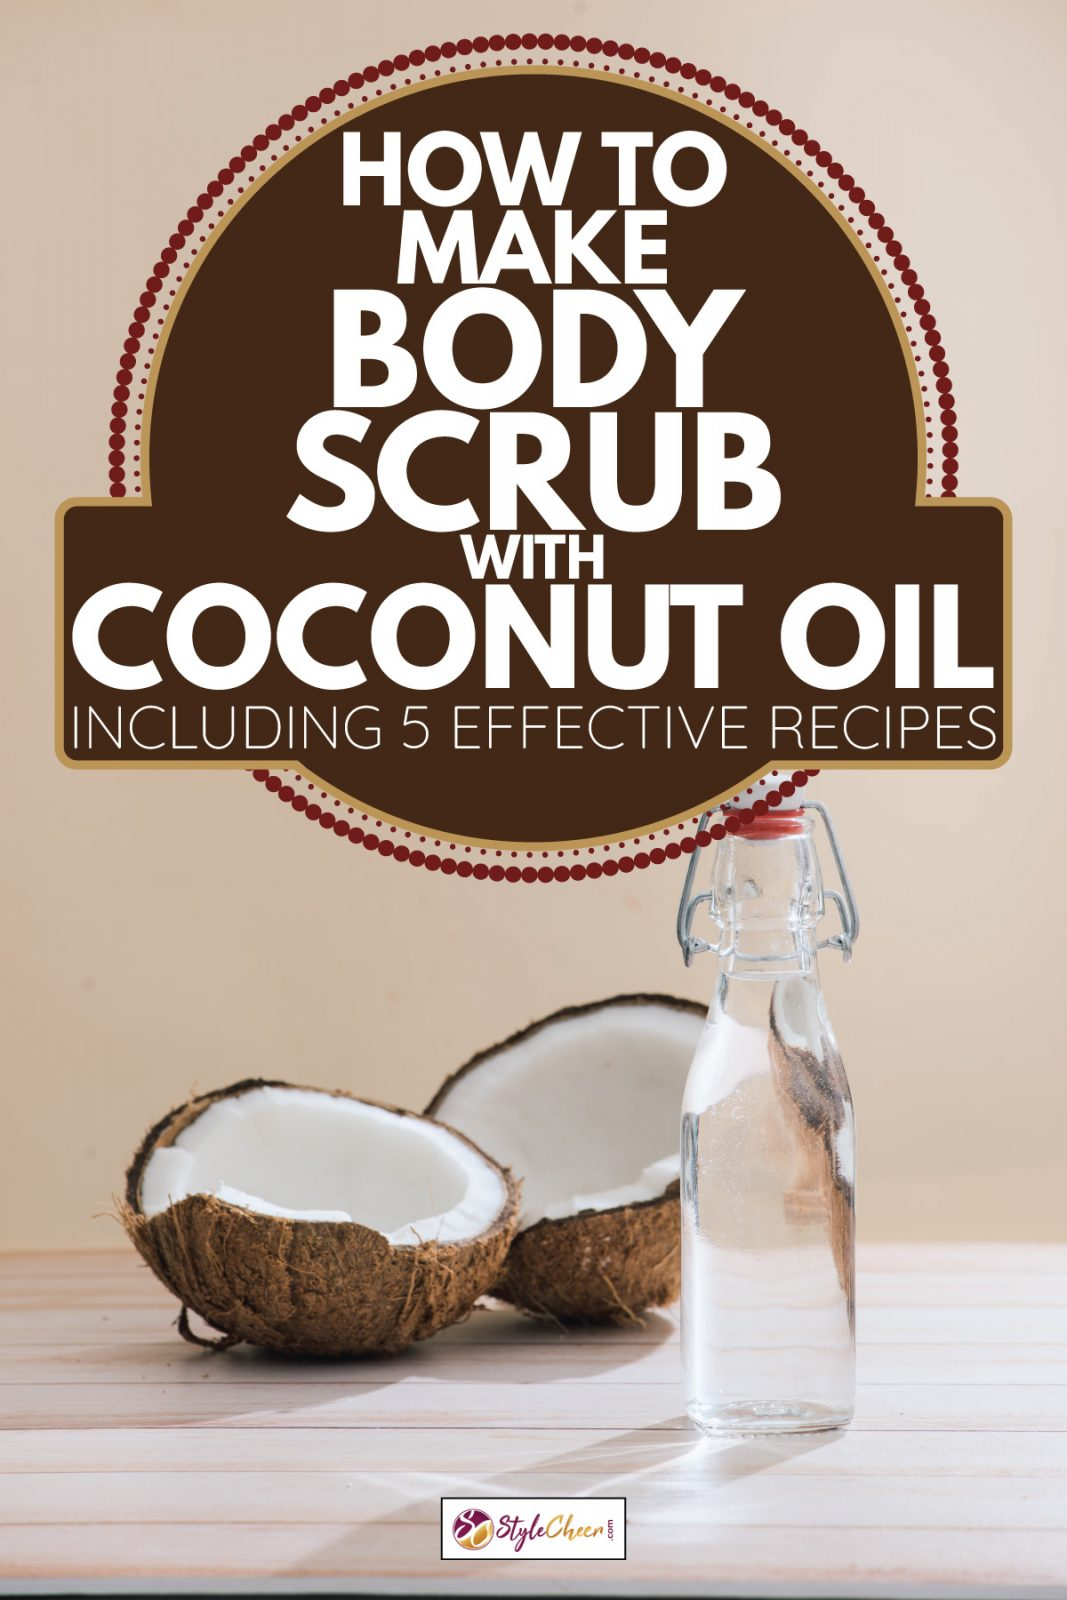 Healthy skincare. Pure coconut oil is made from organic coconut on wooden background. How To Make Body Scrub With Coconut Oil [Including 5 Effective Recipes]